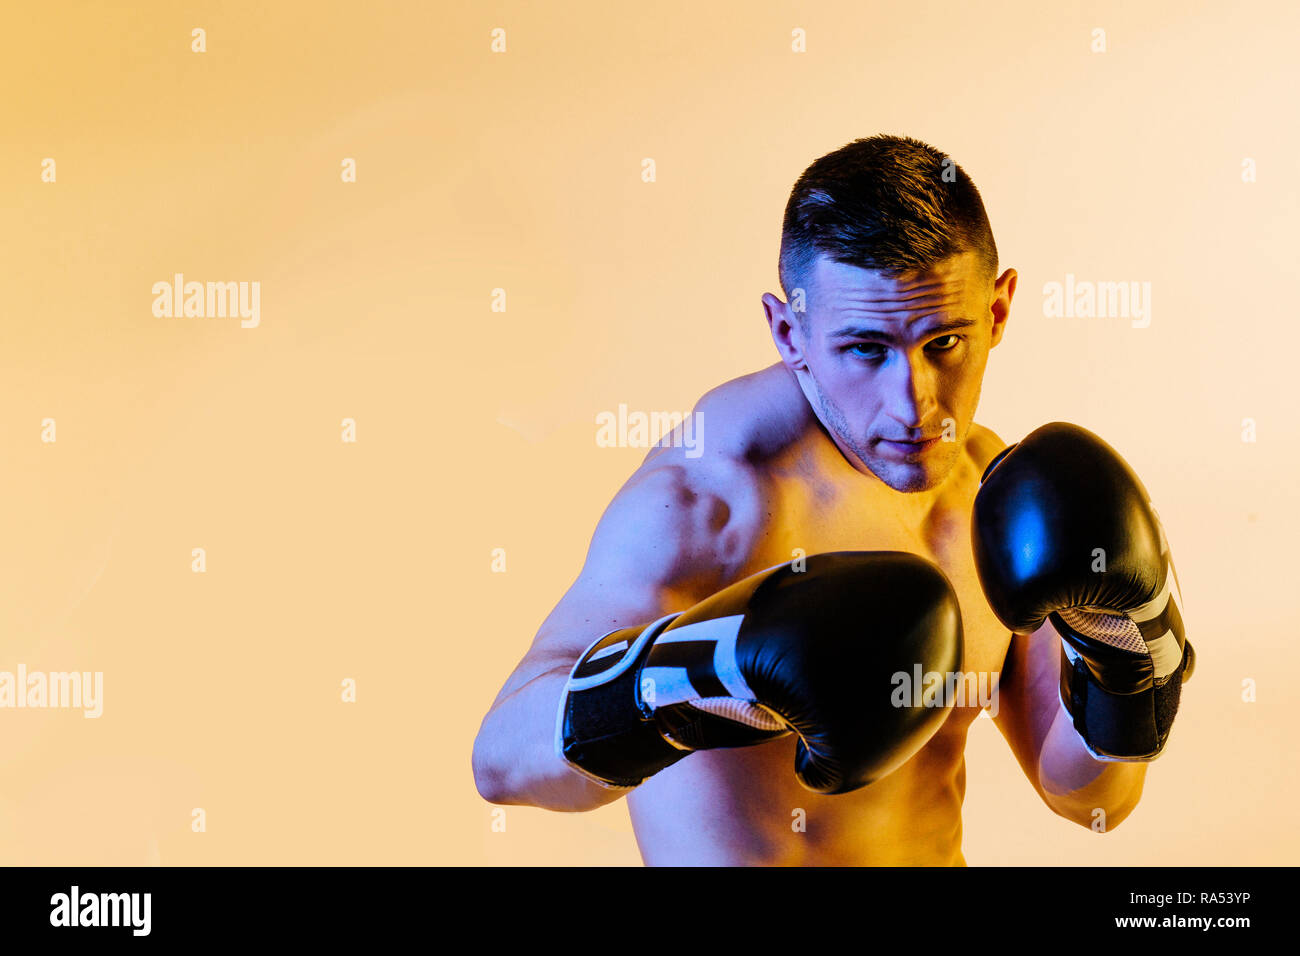 studio portrait of a boxer in defense position - Stock Image